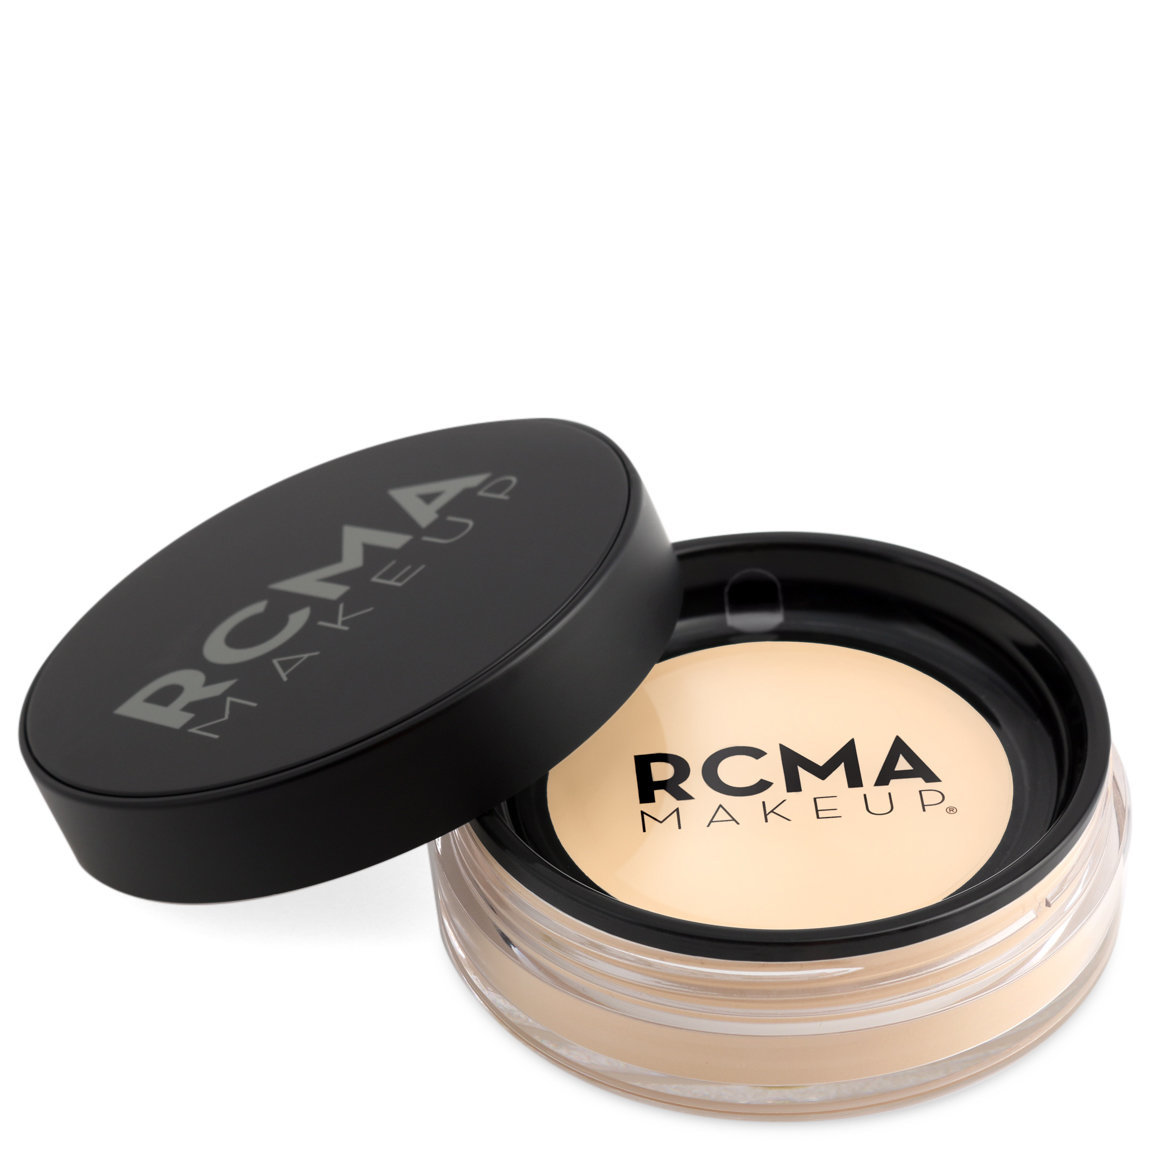 RCMA Makeup Premiere Loose Powder Amber alternative view 1 - product swatch.